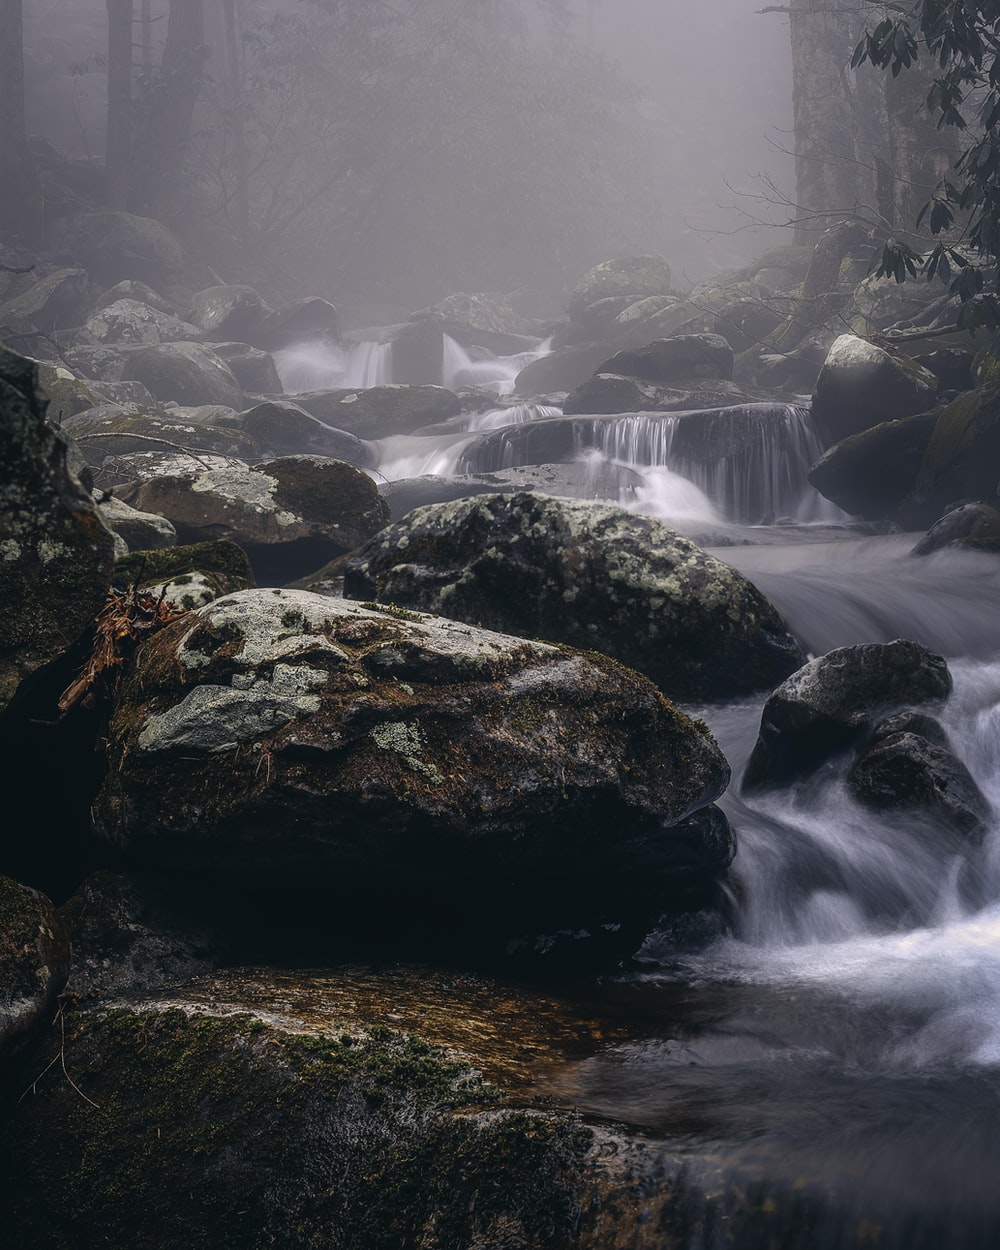 flowing stream during foggy weather